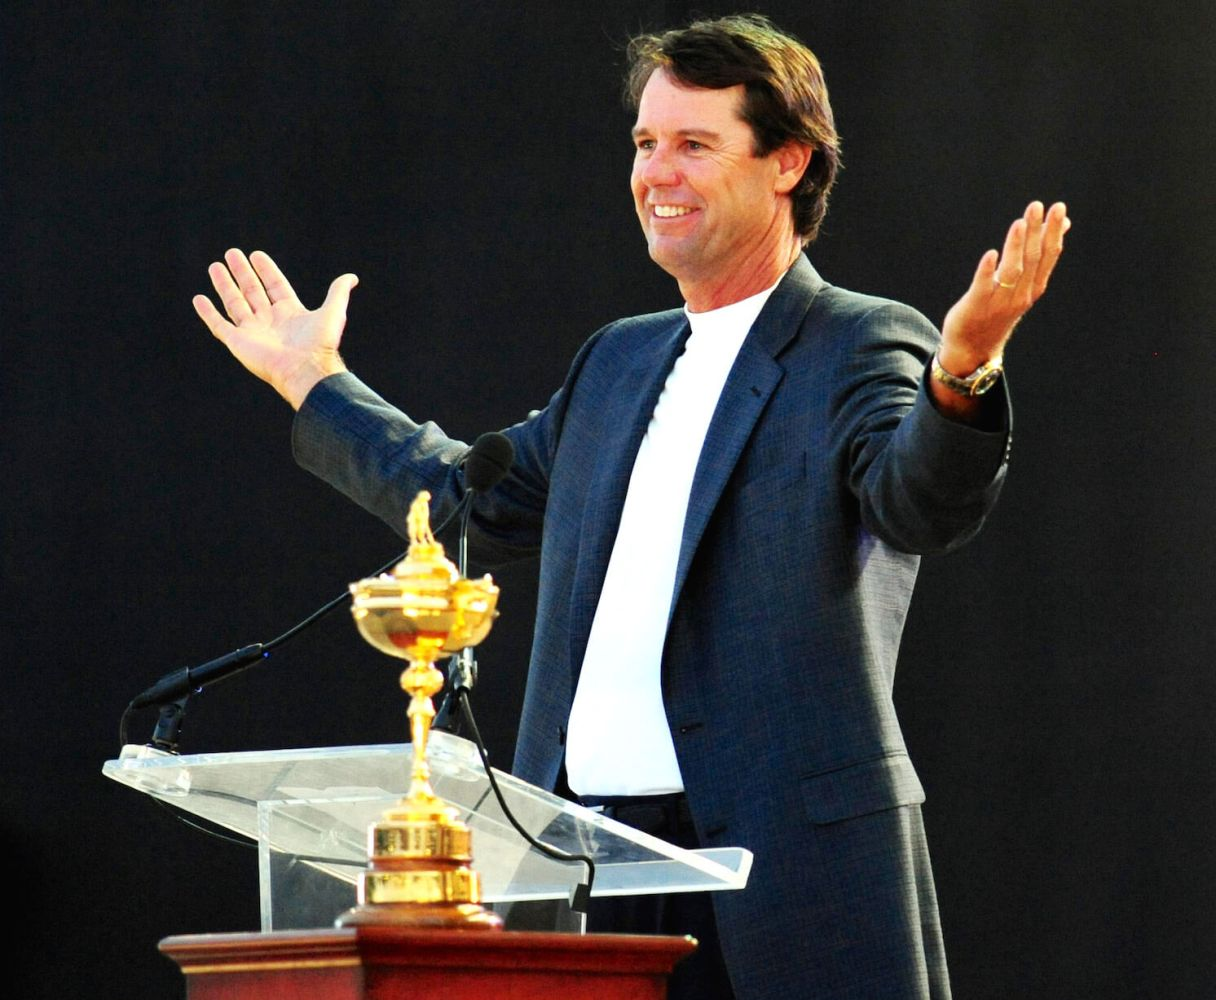 An Undefeated System: Paul Azinger and the 2008 Ryder Cup